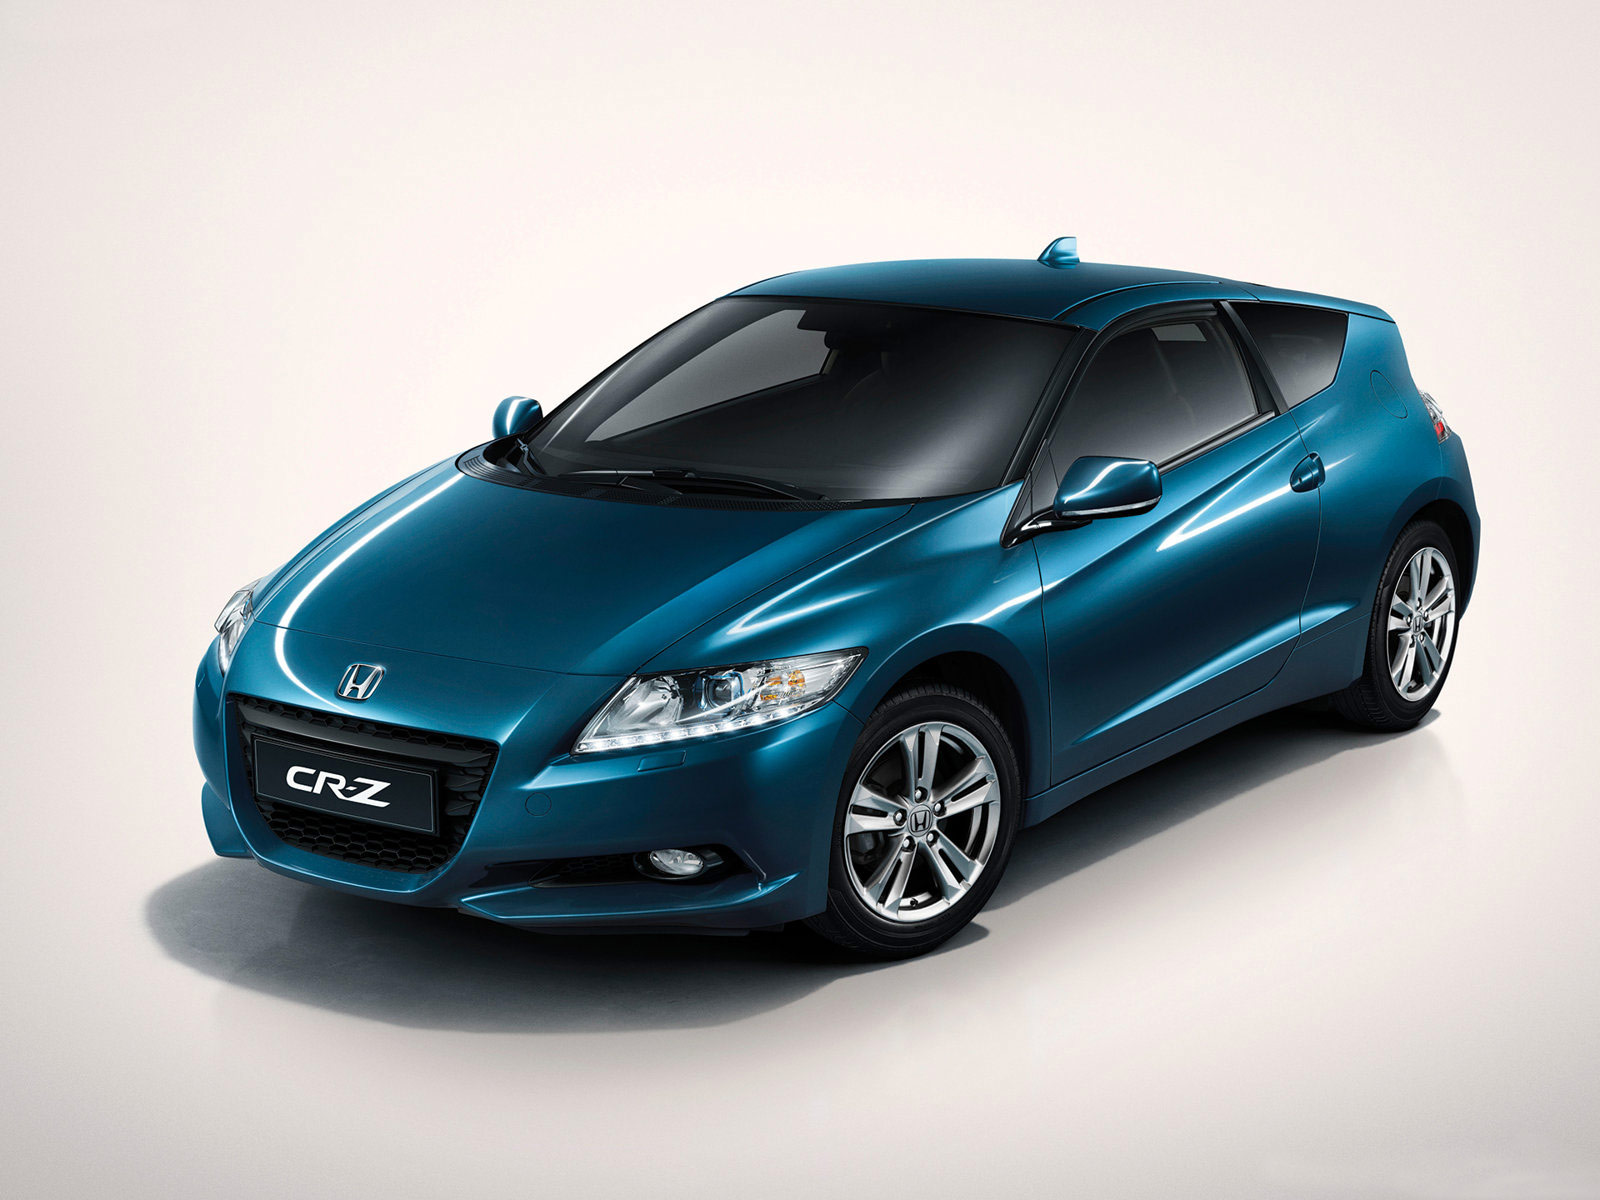 2011 honda cr z japanese car photos. Black Bedroom Furniture Sets. Home Design Ideas